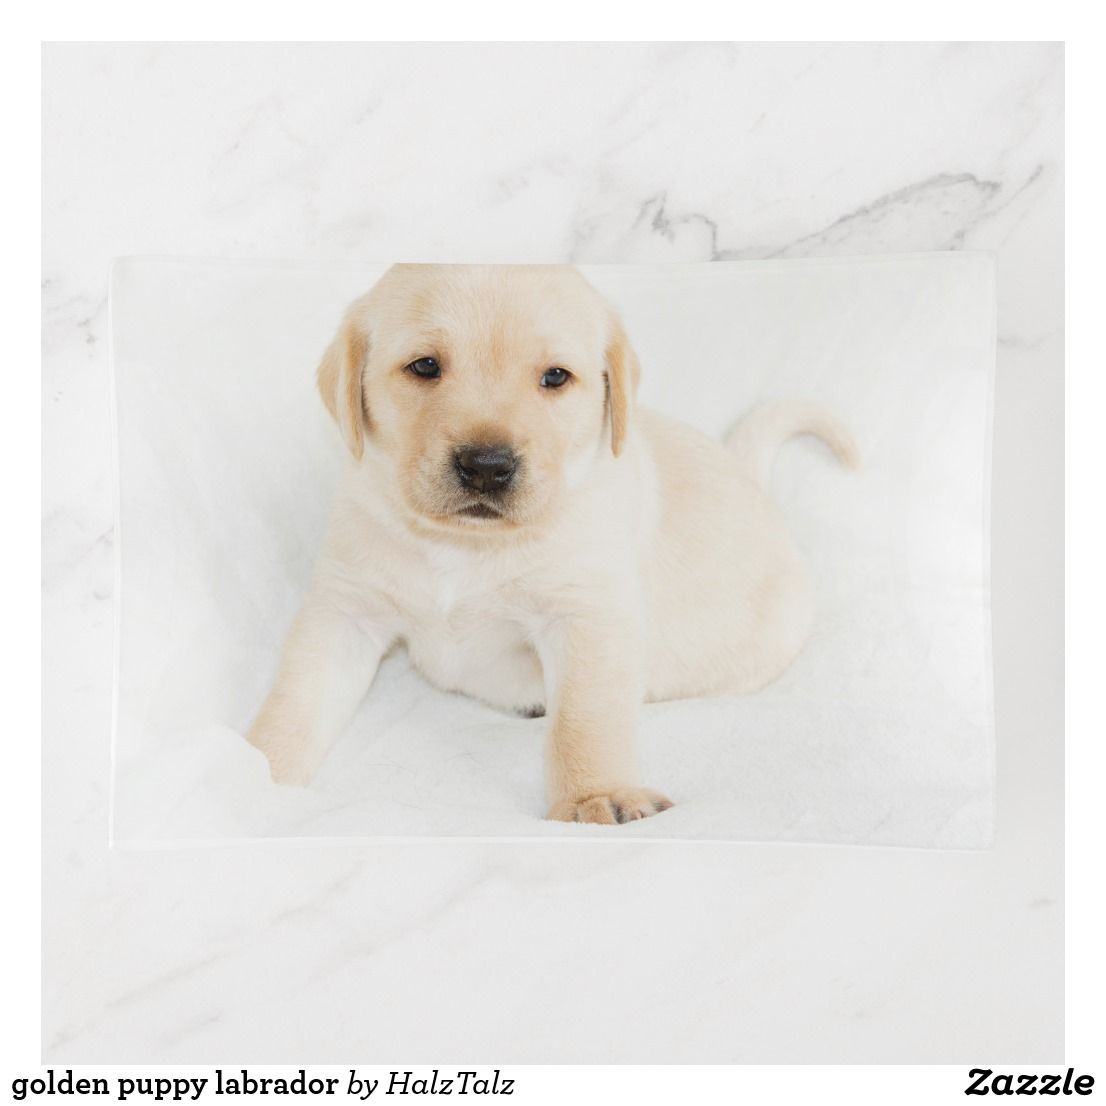 Golden Puppy Labrador Trinket Trays Zazzle Co Uk Golden Puppy Labrador Puppies